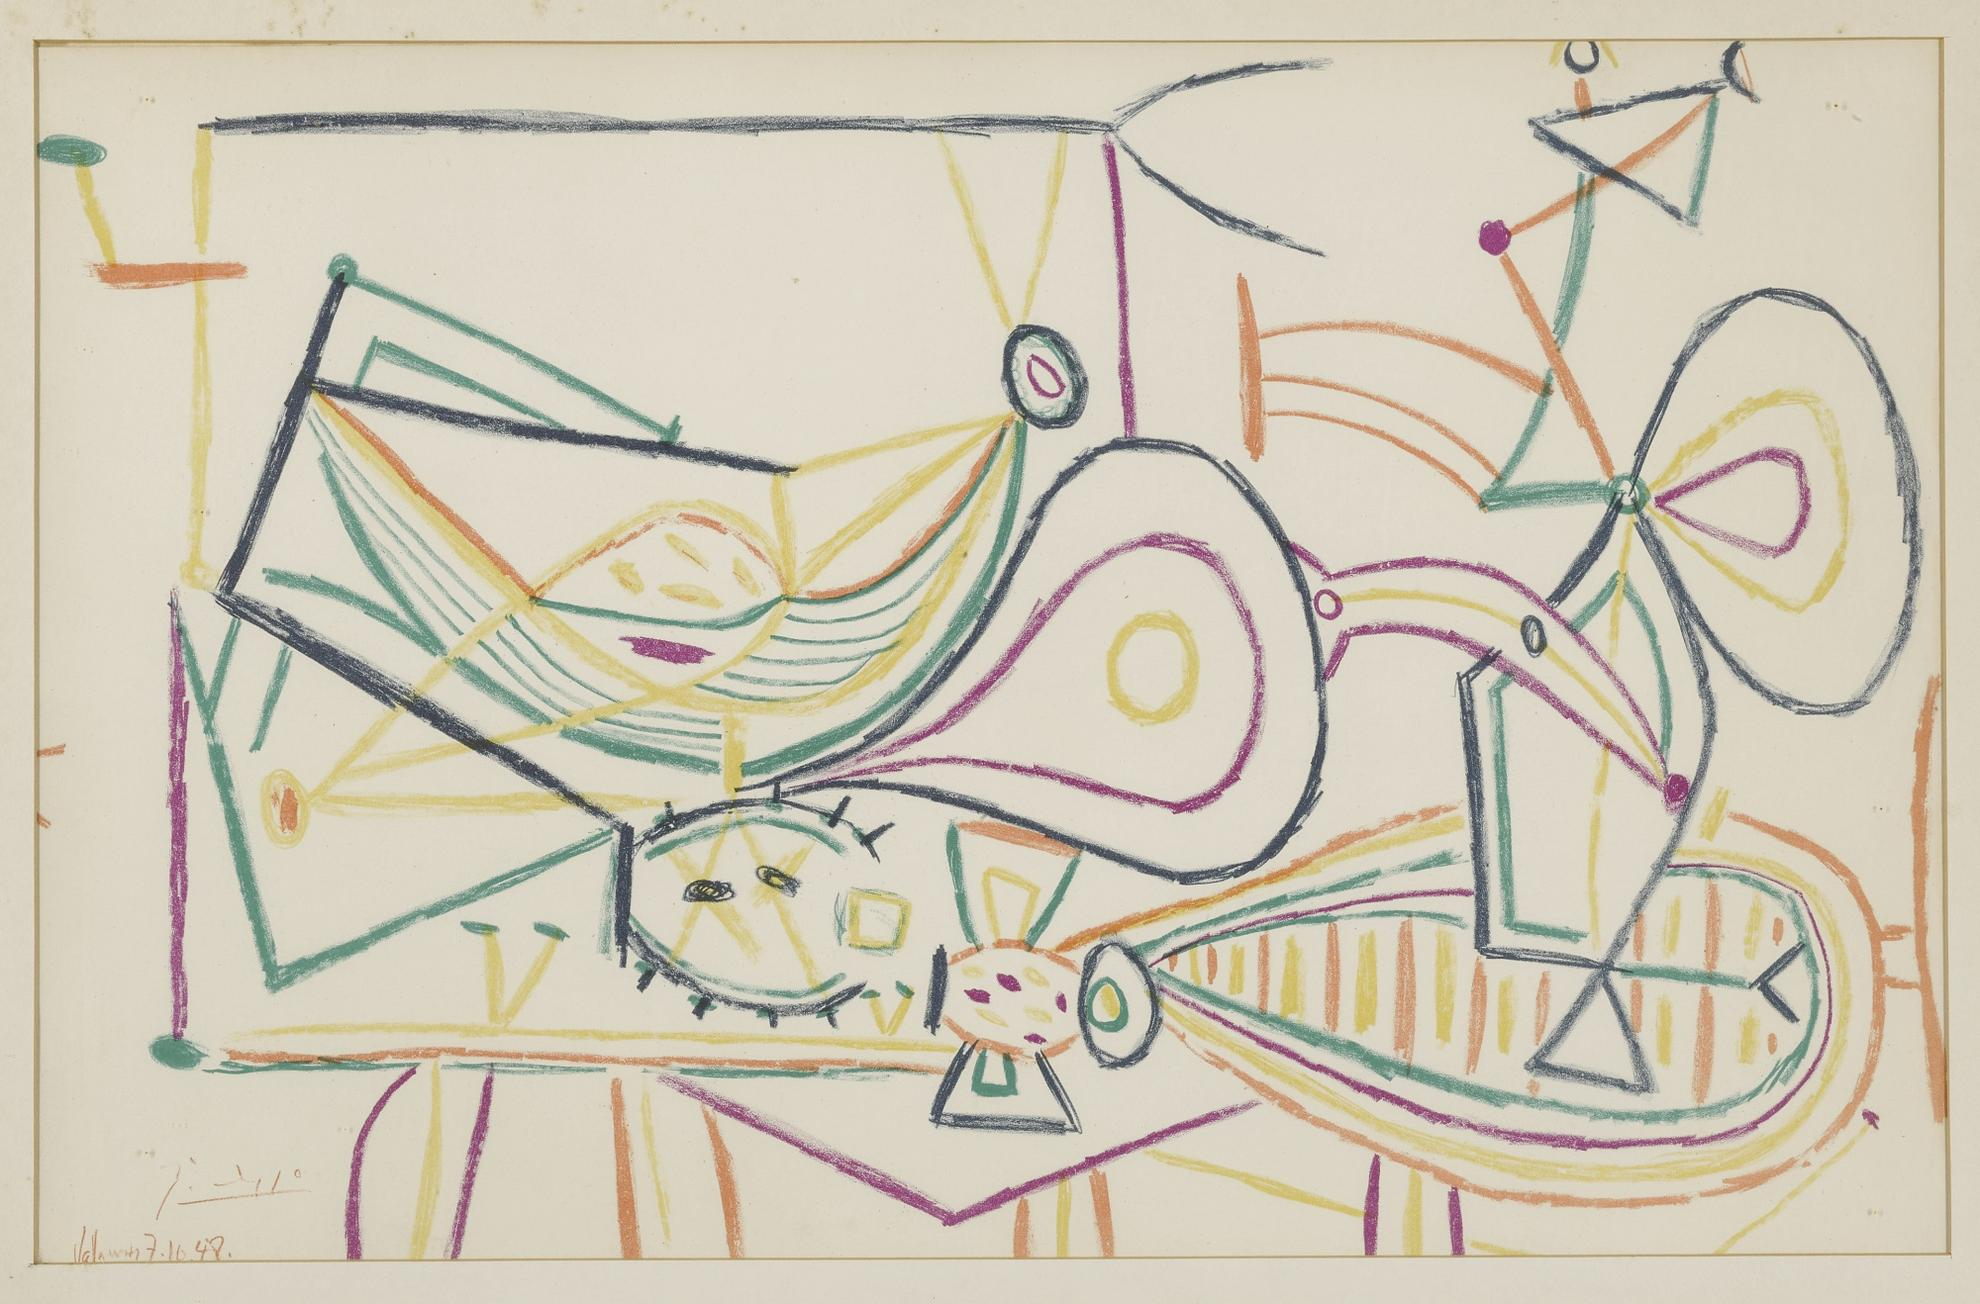 After Pablo Picasso - Untitled: Vallauris 7.10.1948-1948